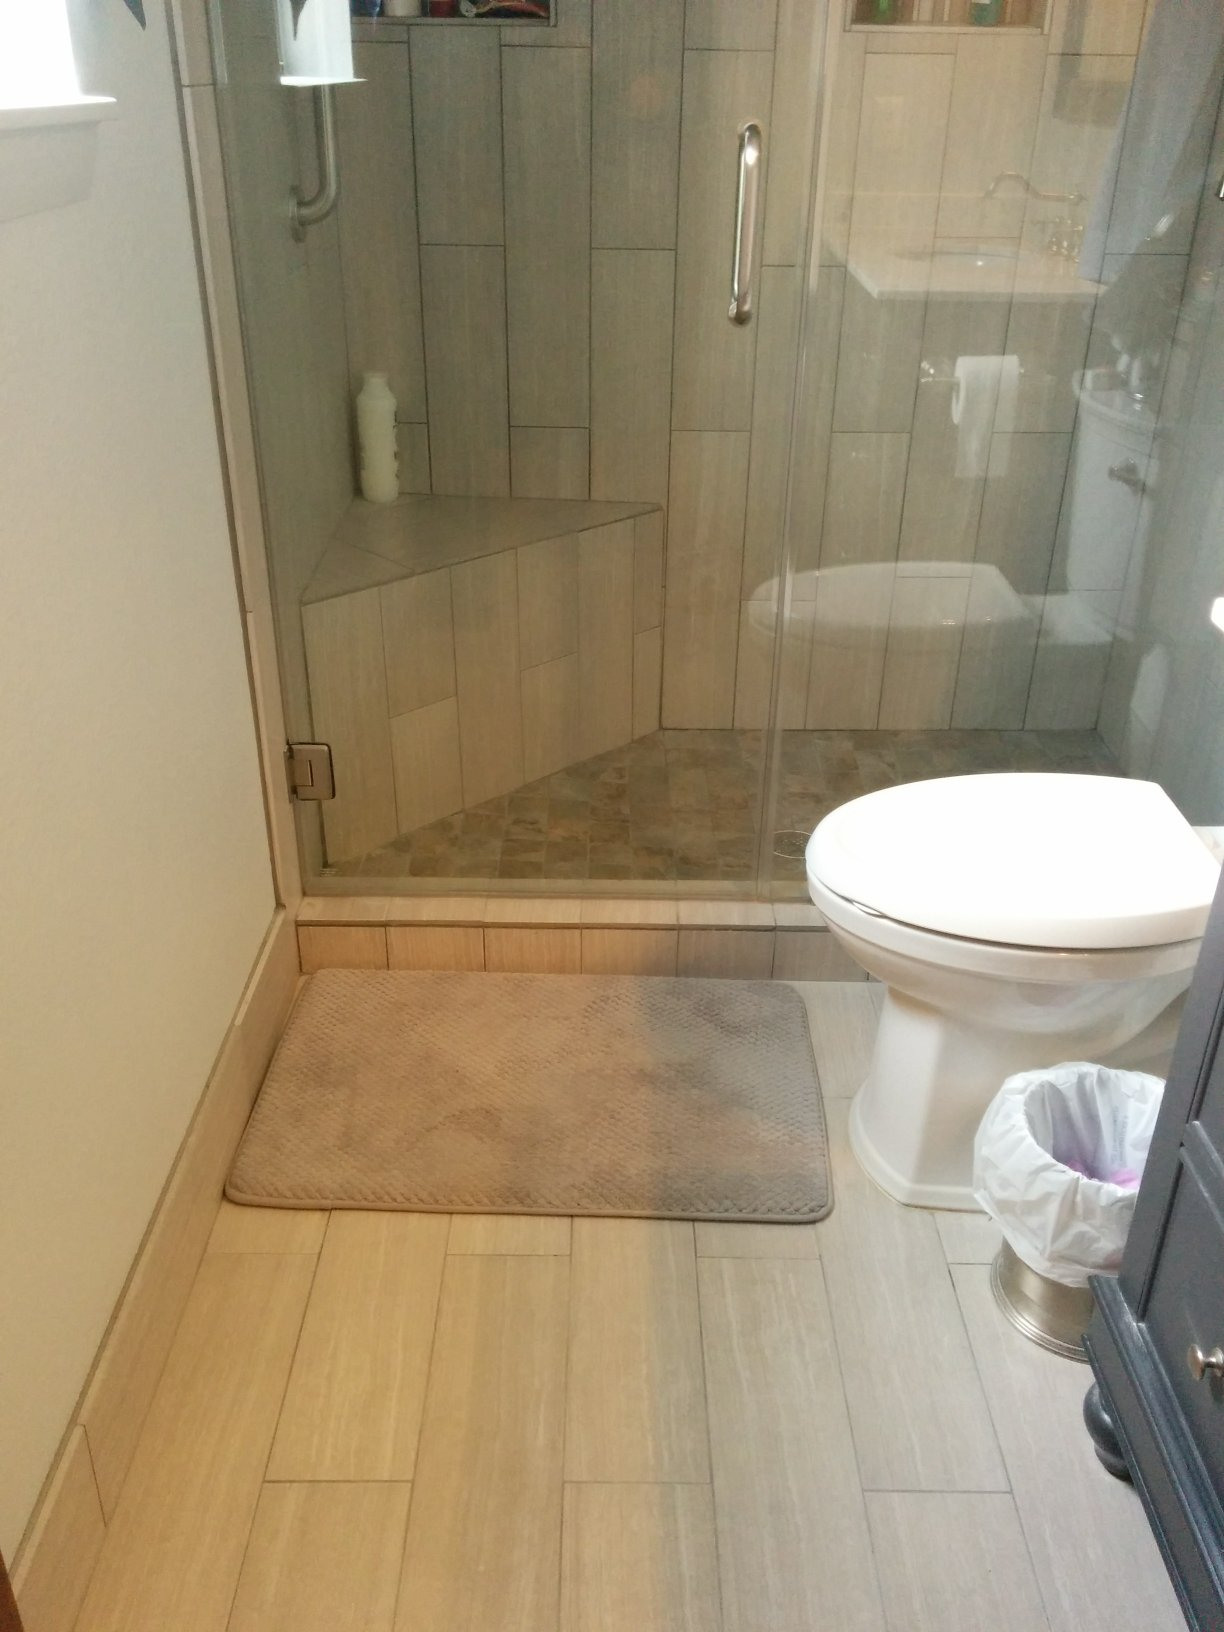 Nagel Shower And Bath Floor Deer Park Seabrook League City - Renovate bathroom floor